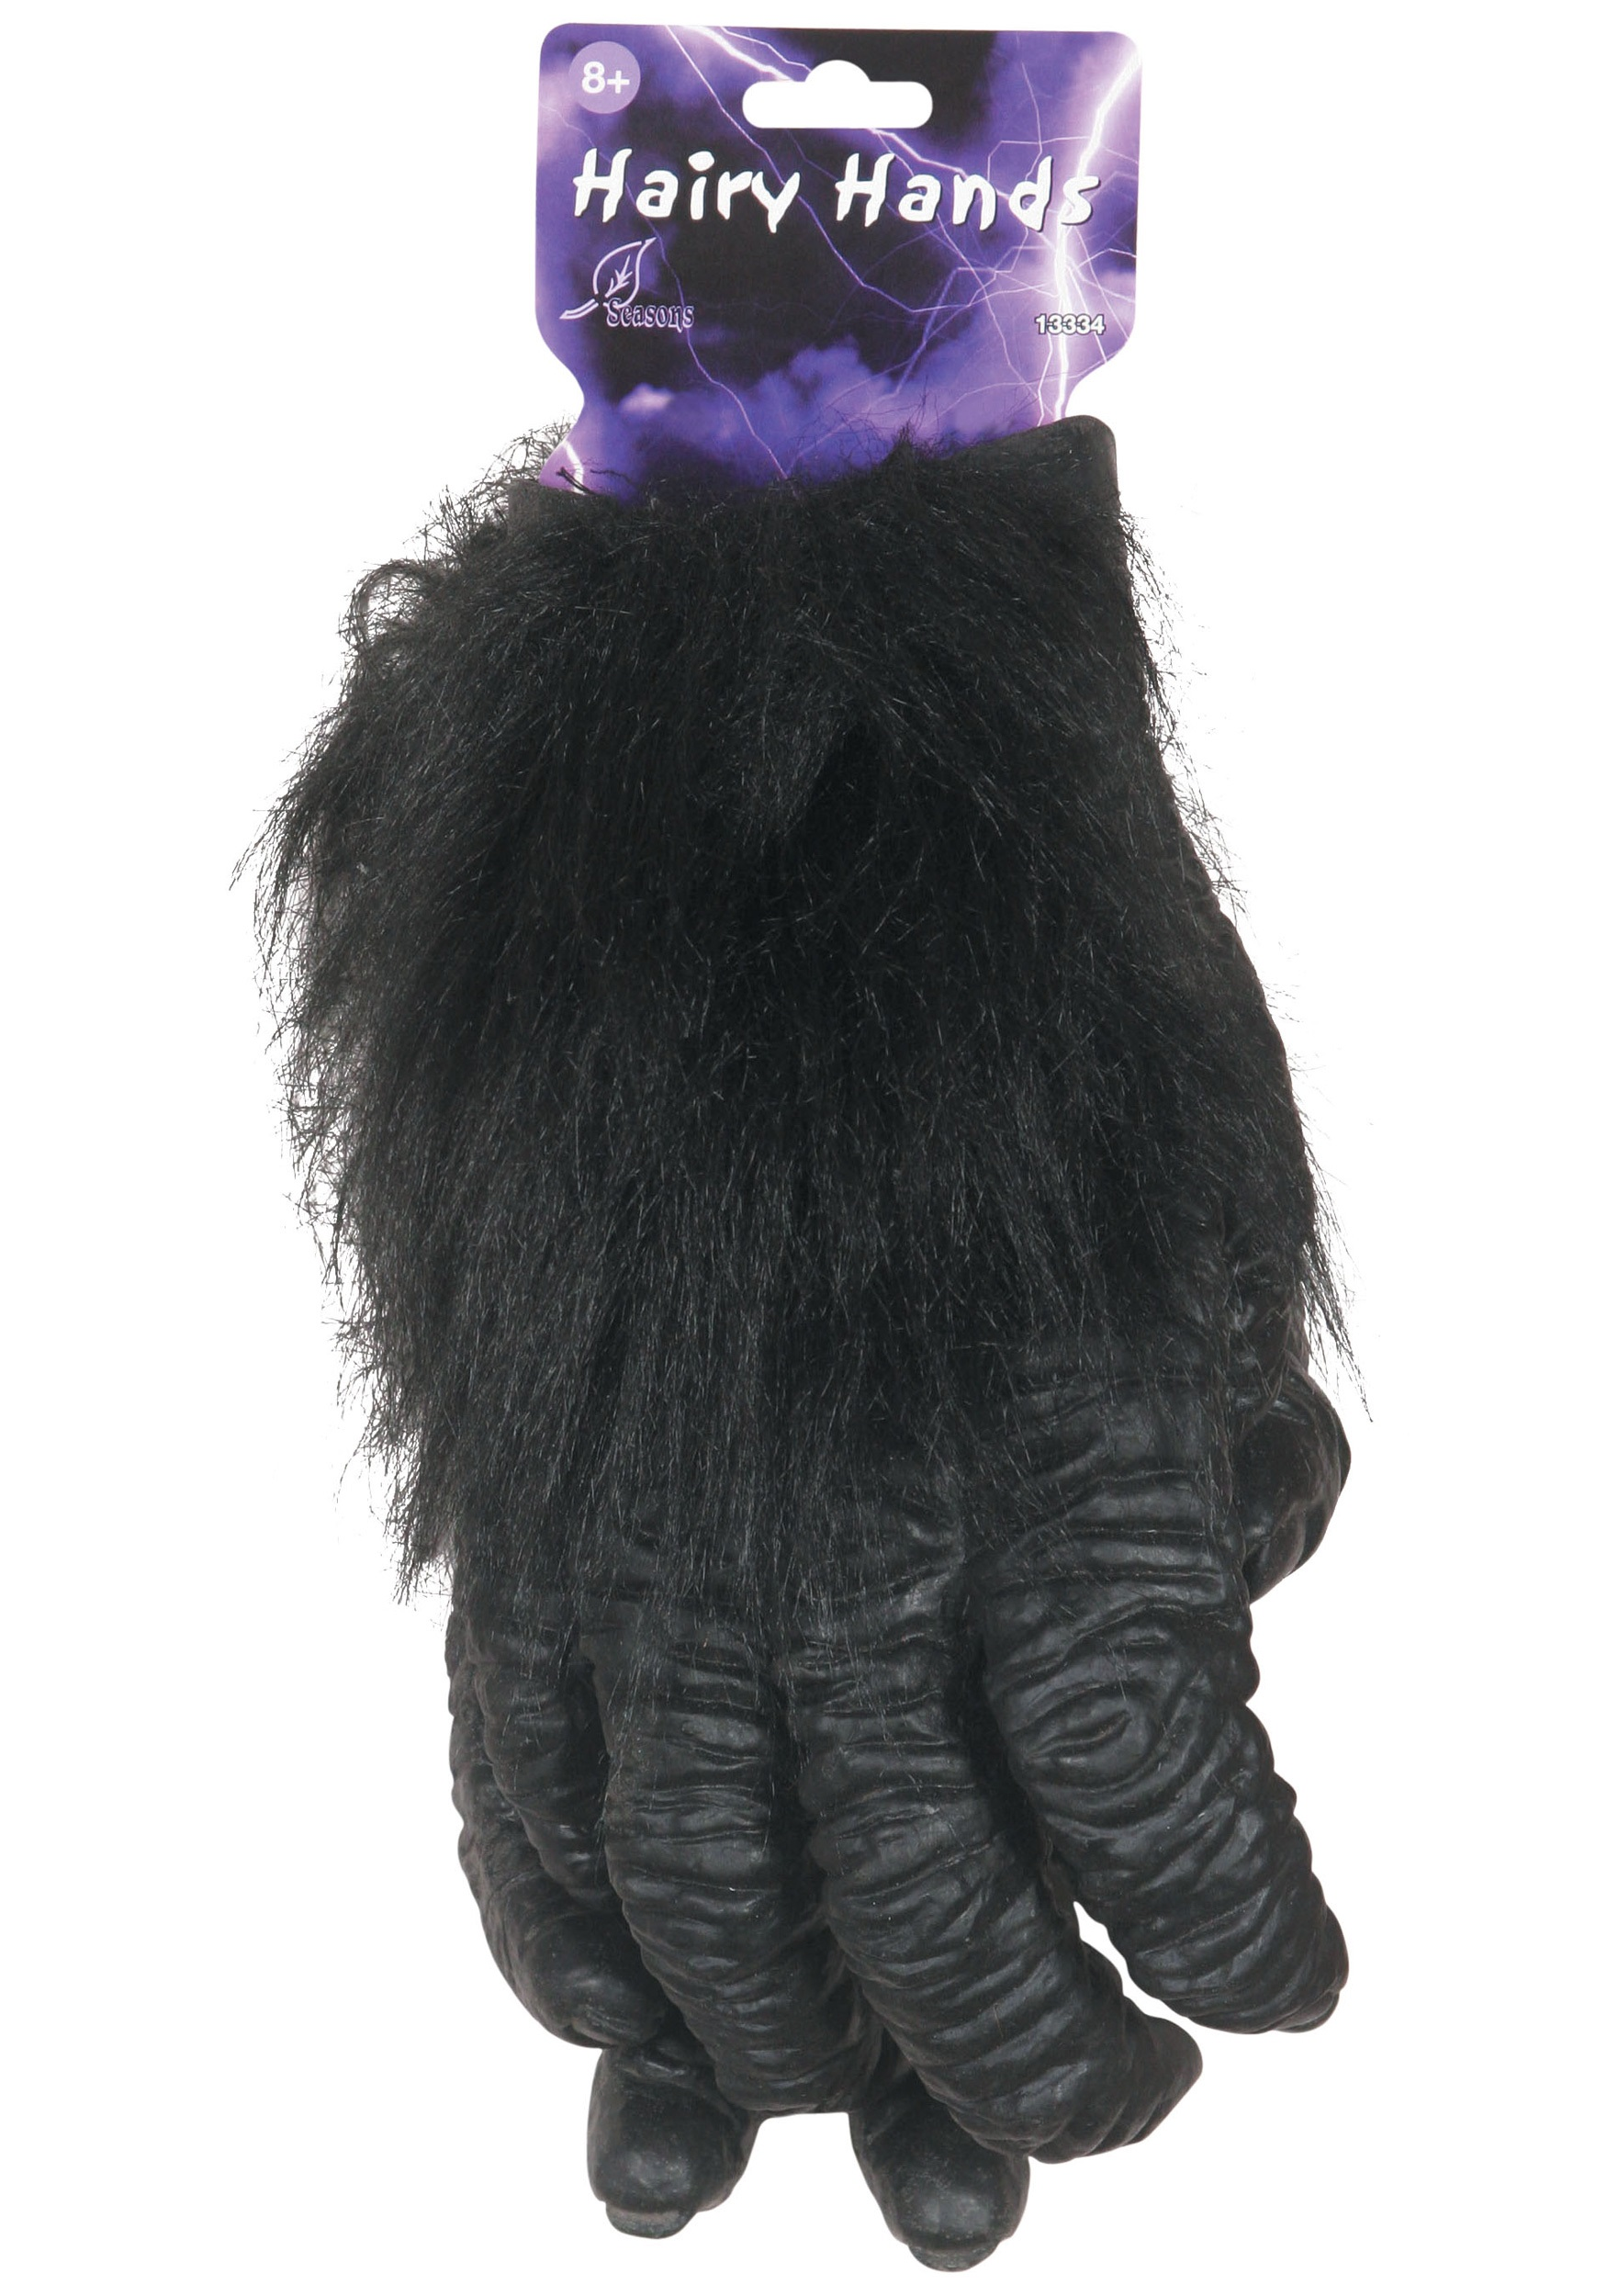 Uncategorized How To Make A Gorilla Costume gorilla hands